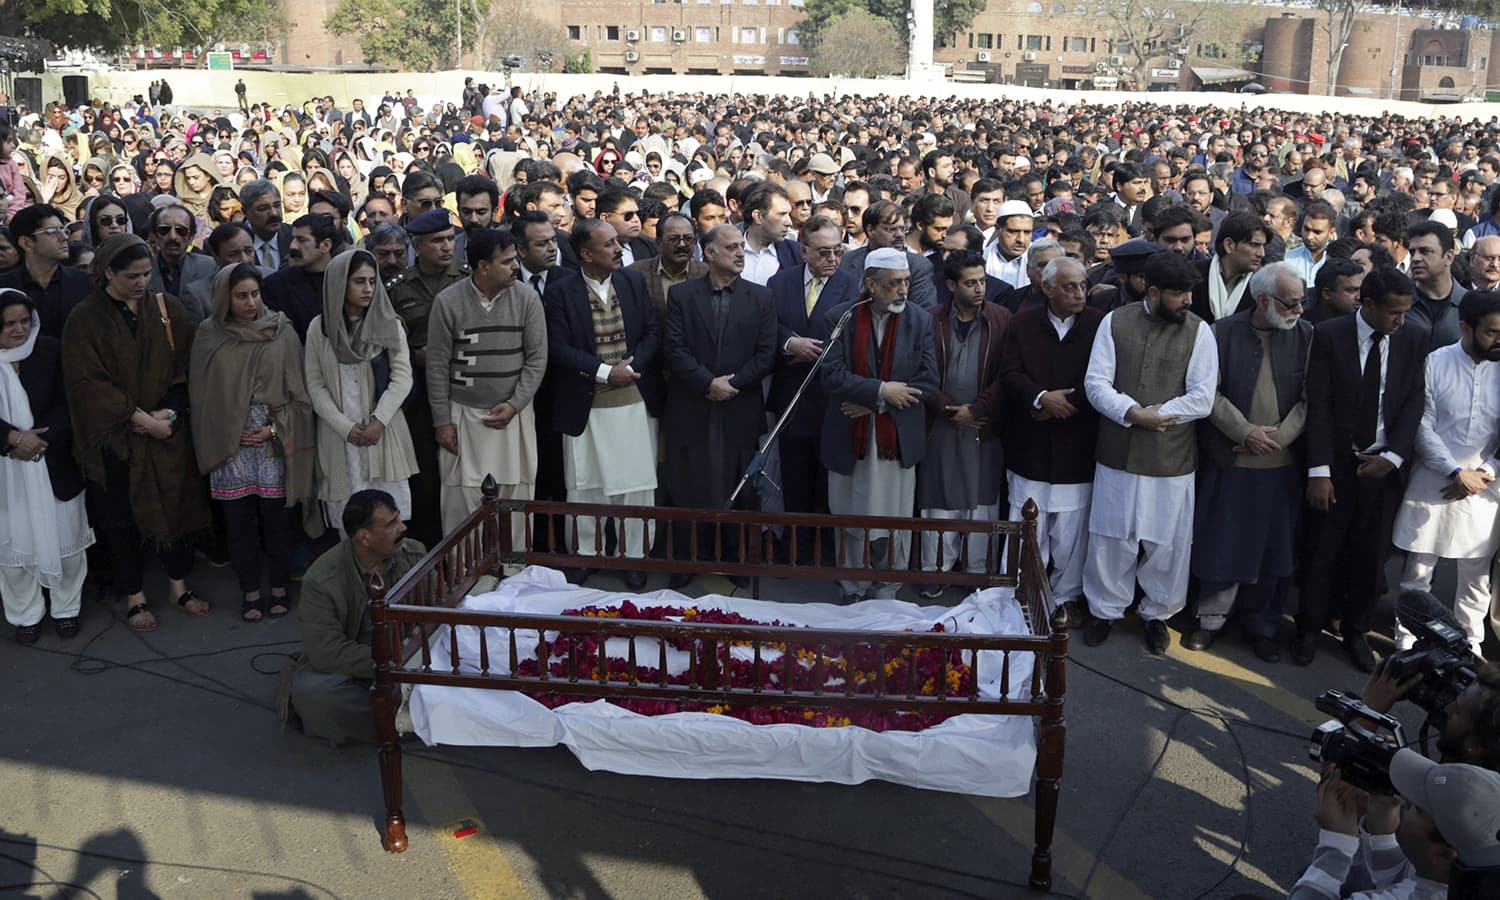 People pray during the funeral of Asma Jahangir. — AP